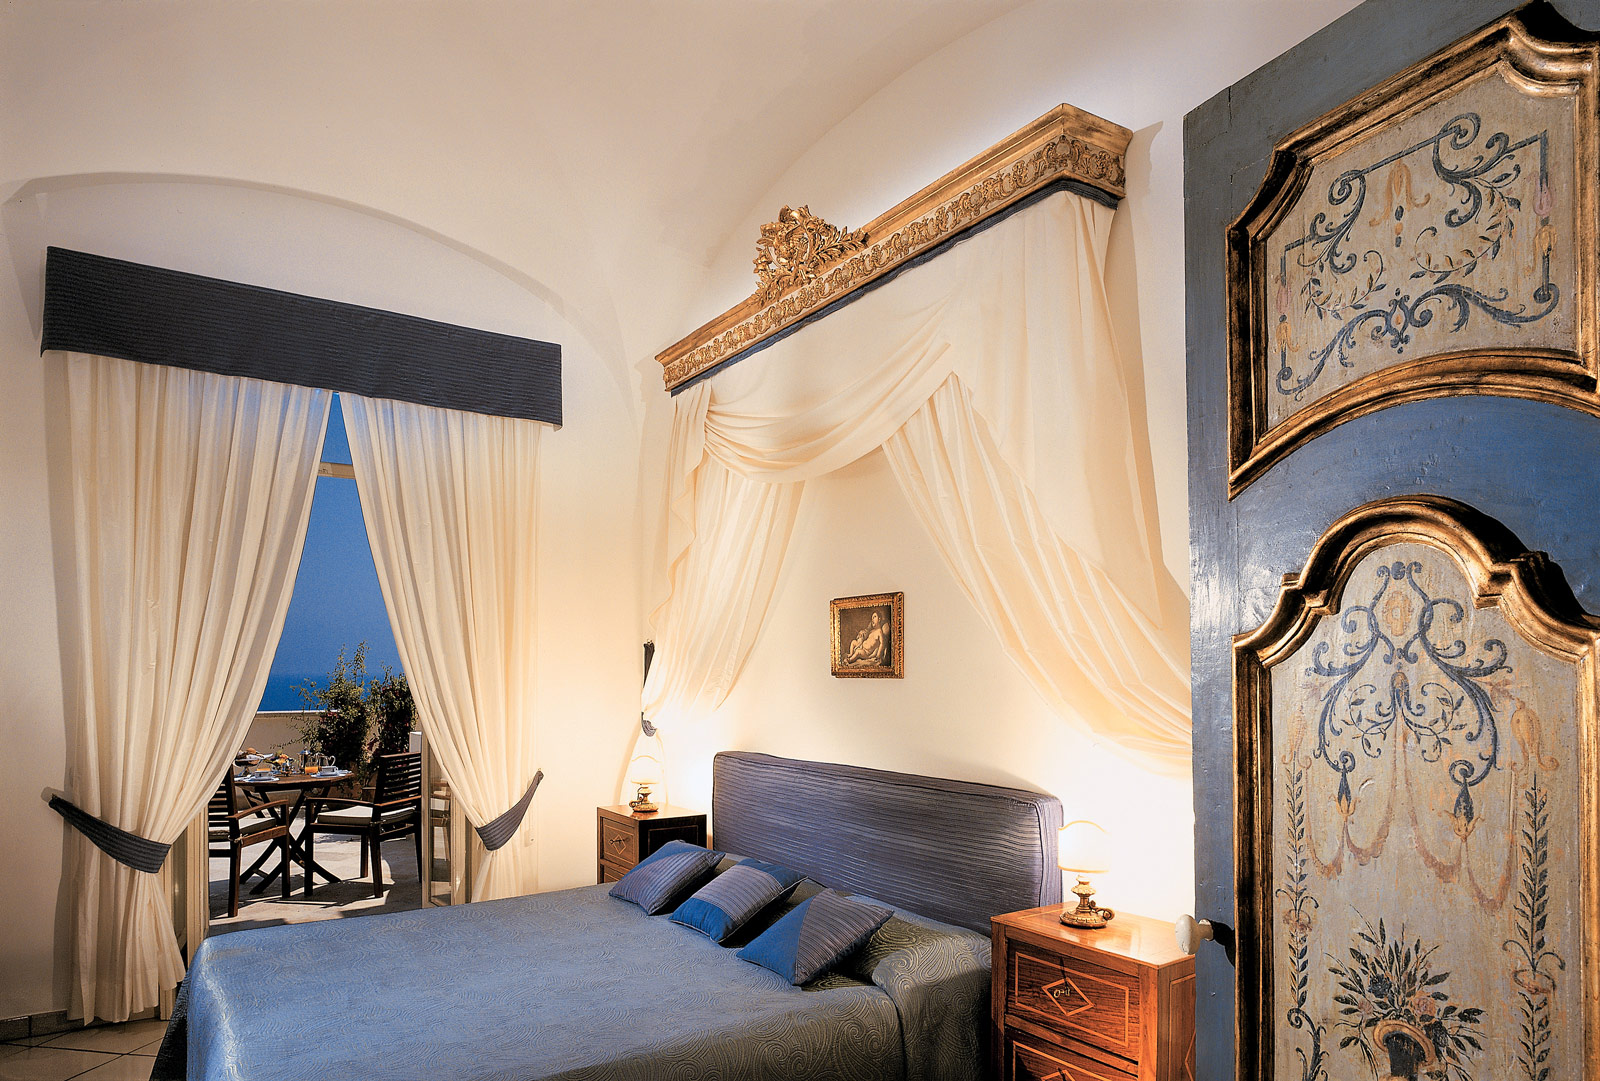 One of the stunning suites in the Hotel Santa Caterina